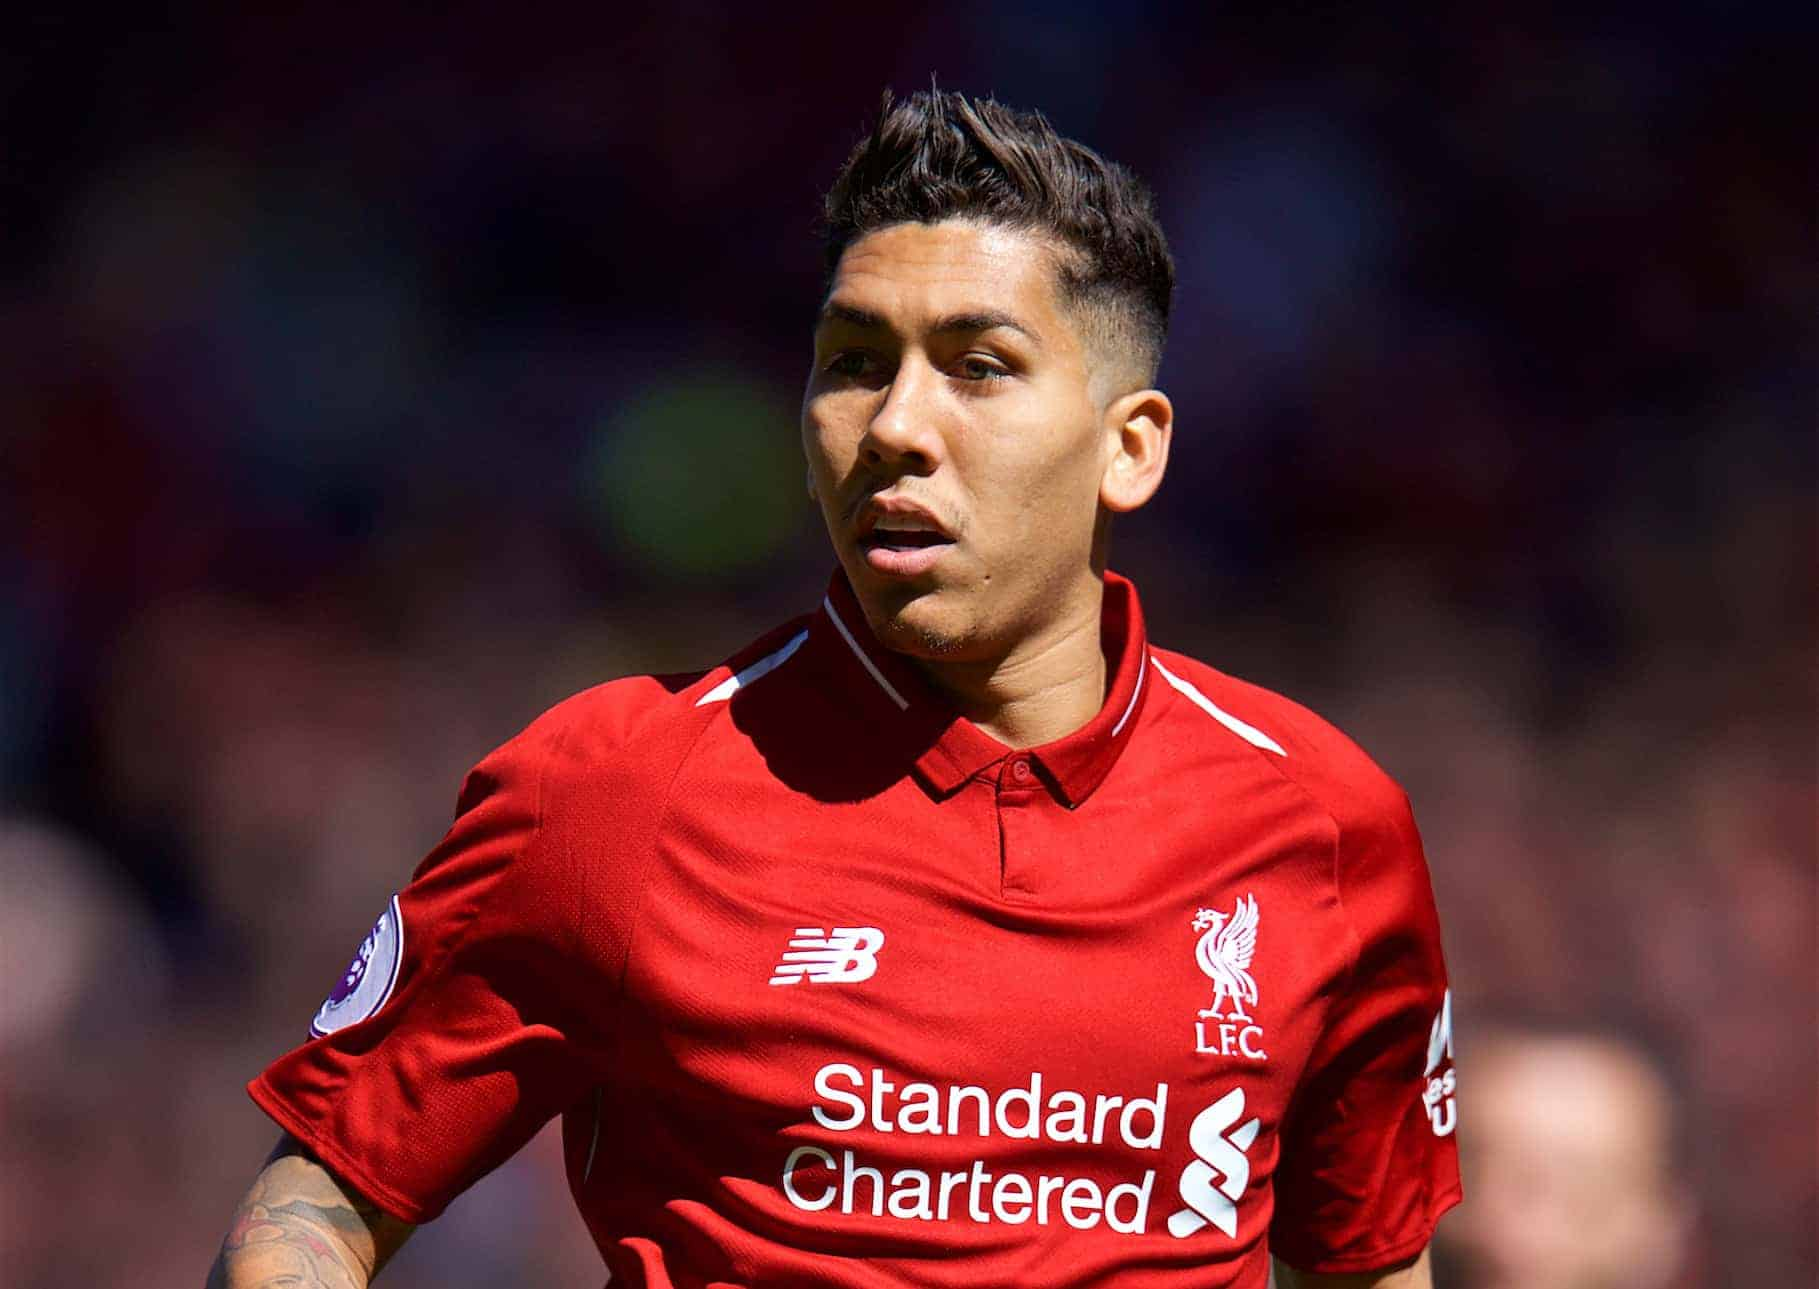 LIVERPOOL, ENGLAND - Sunday, May 13, 2018: Liverpool's Roberto Firmino during the FA Premier League match between Liverpool FC and Brighton & Hove Albion FC at Anfield. (Pic by David Rawcliffe/Propaganda)